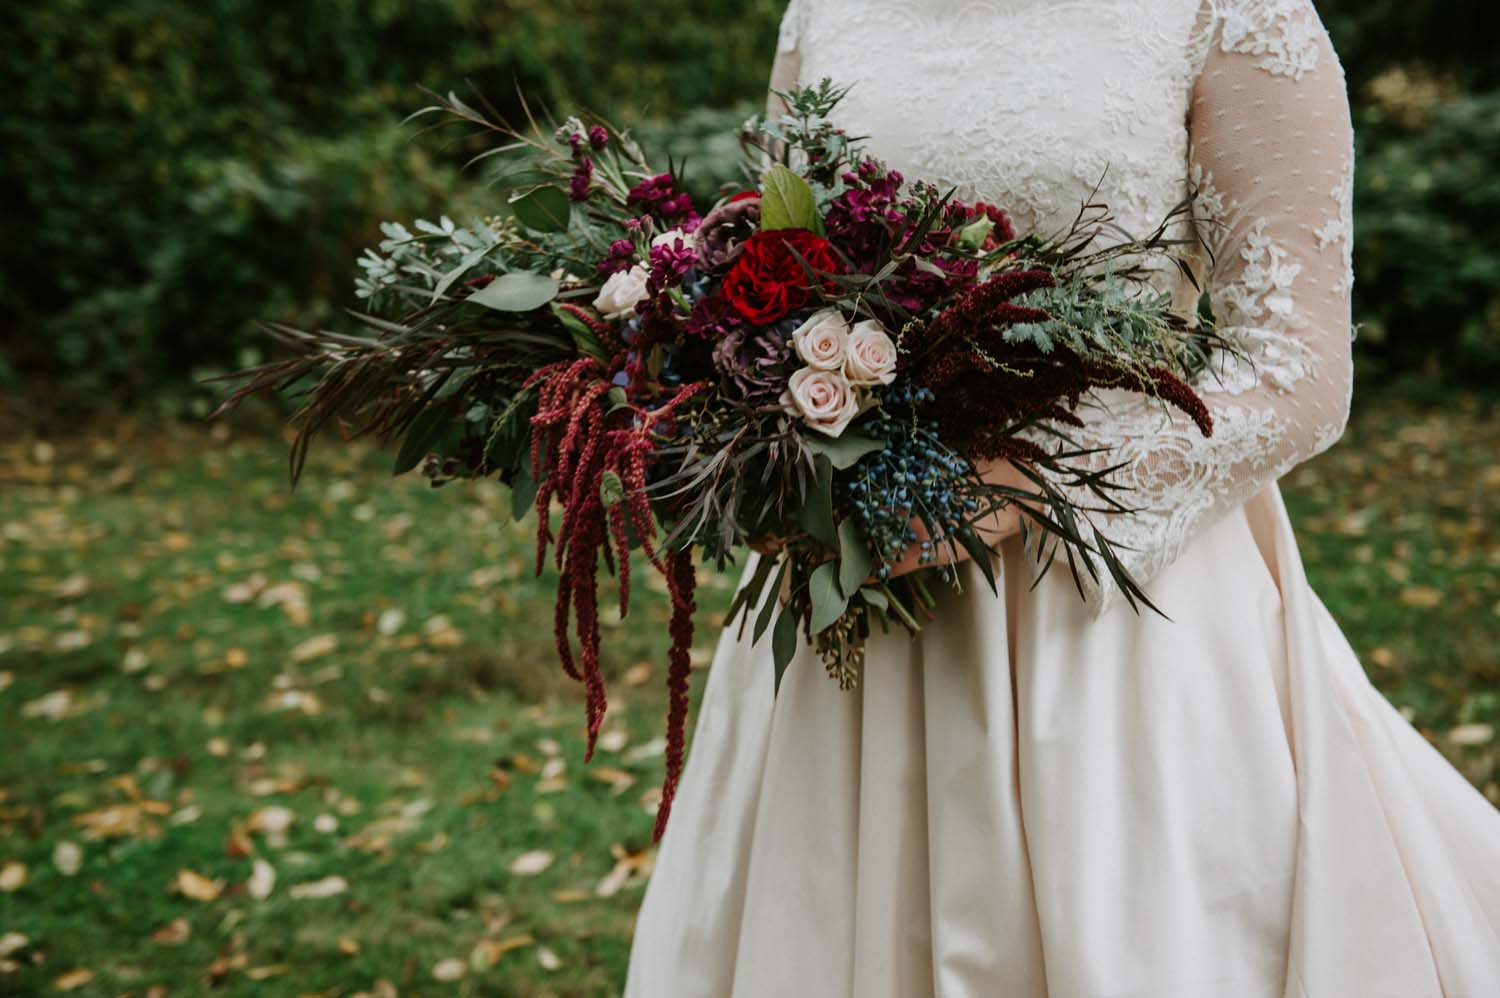 darkly-romantic-wedding-flowers-candis-floral-creations_16